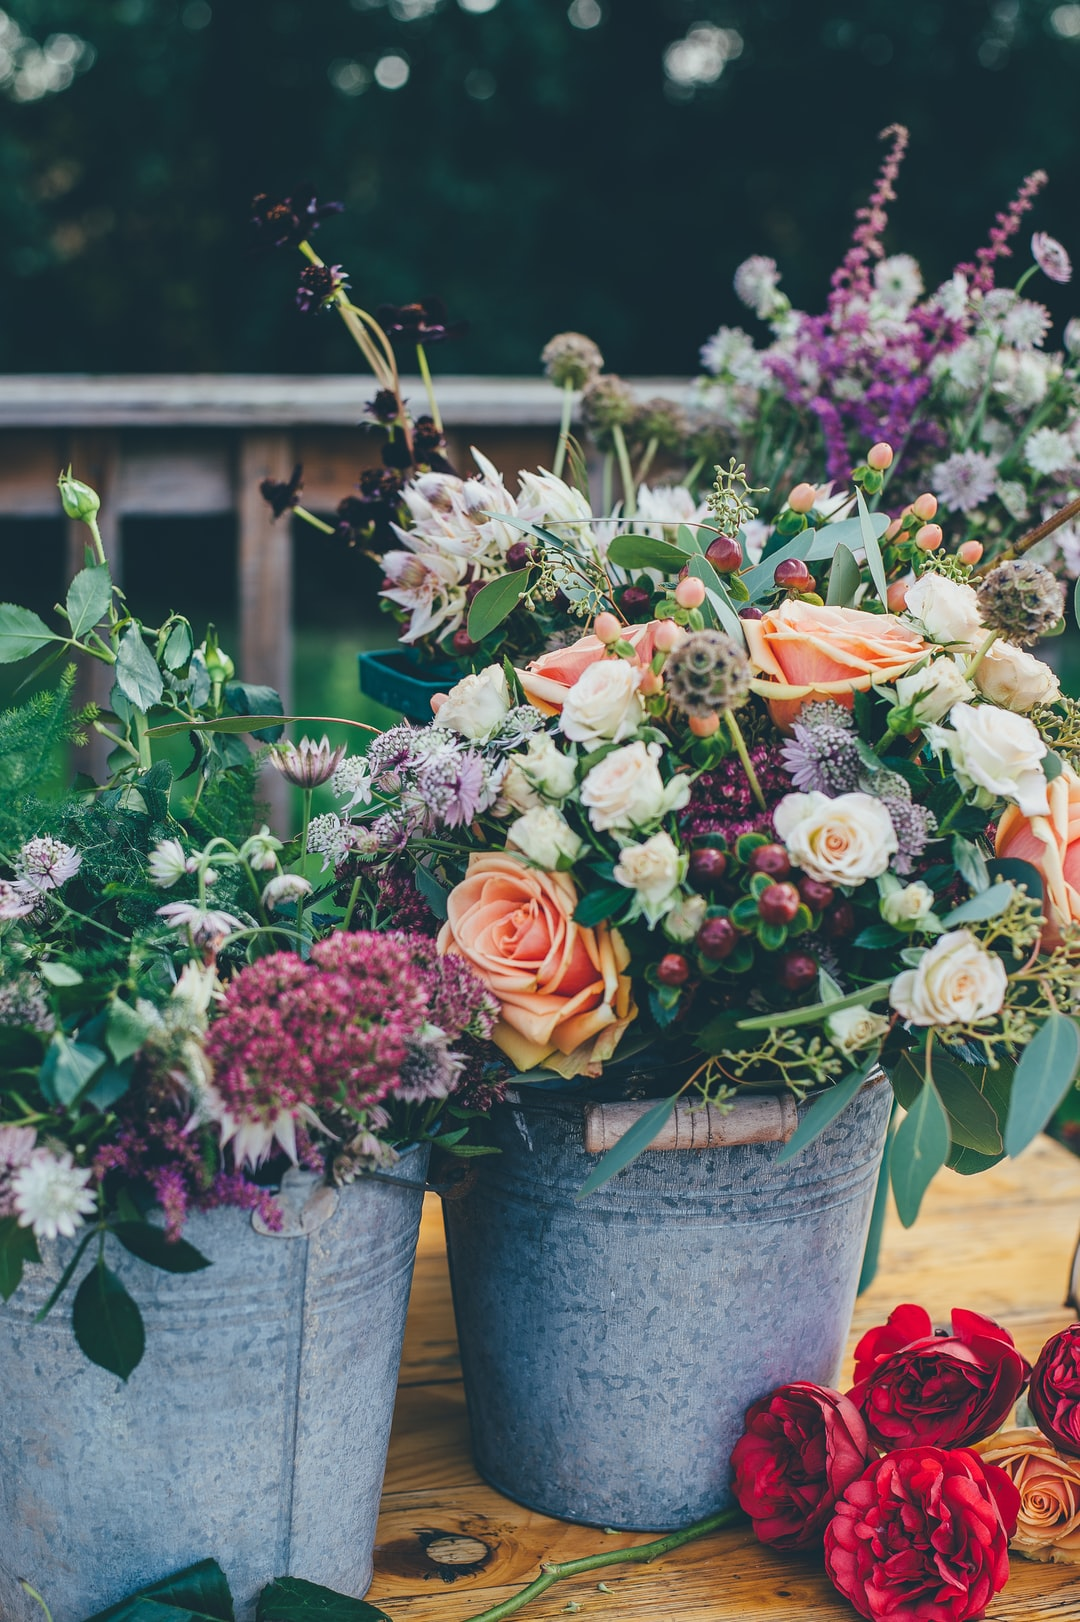 Payment solutions for a florist